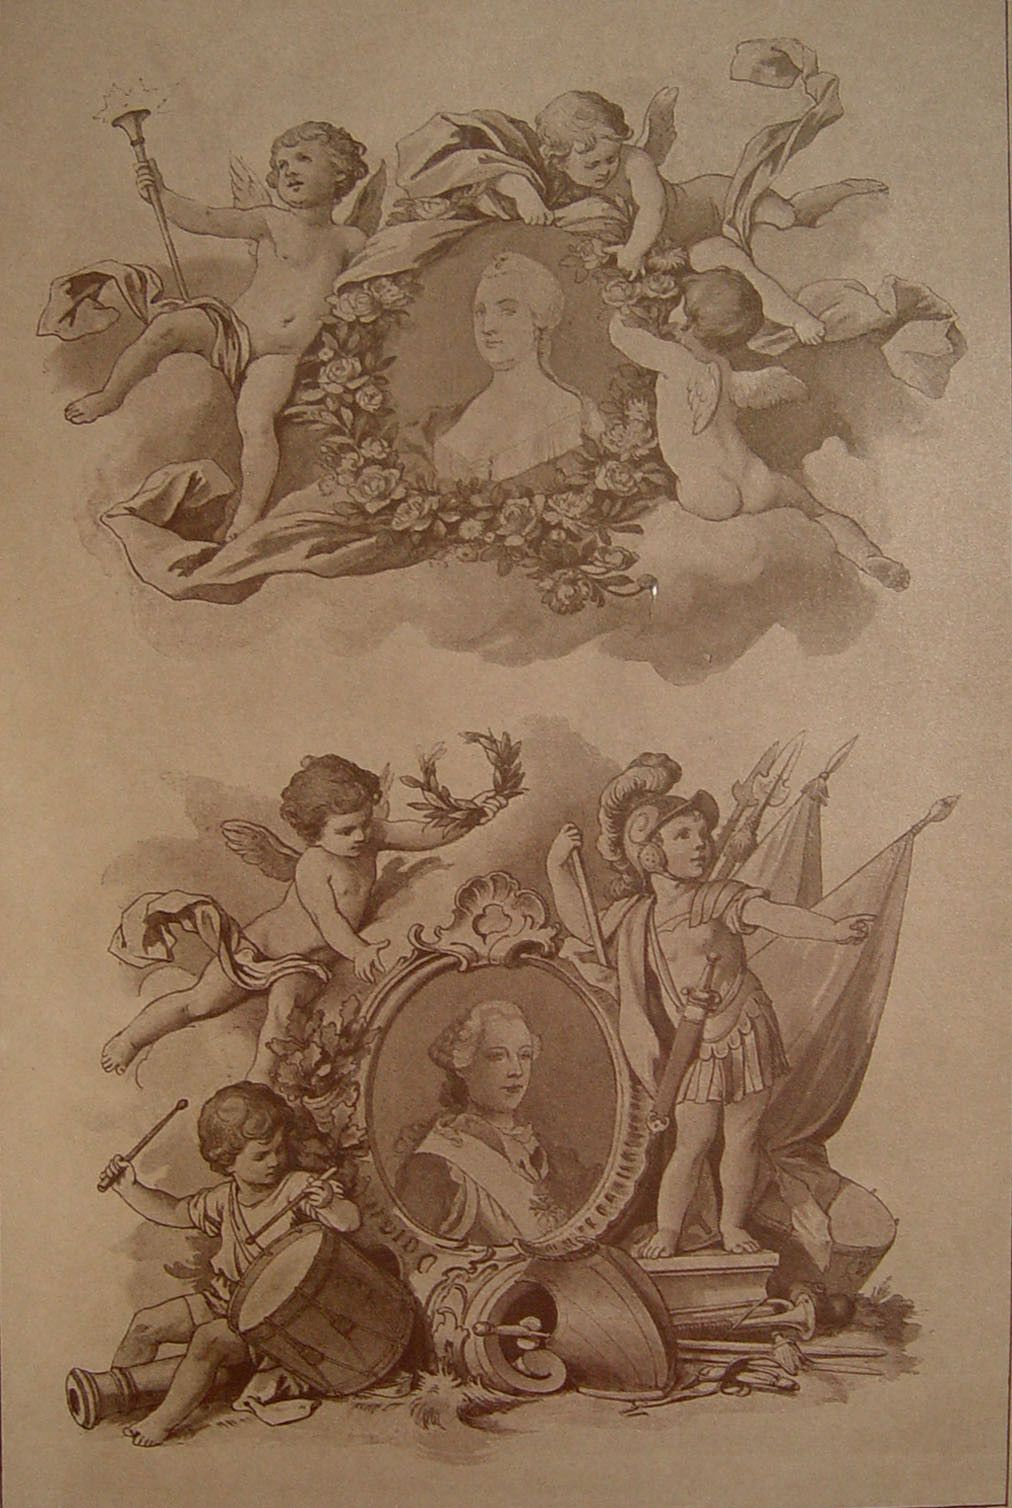 1890s Renaissance Revival Lithograph Of Ornamentations With Cherubs Or Putti Published By Julius Hoffmann Germany From One His Decorative Folios